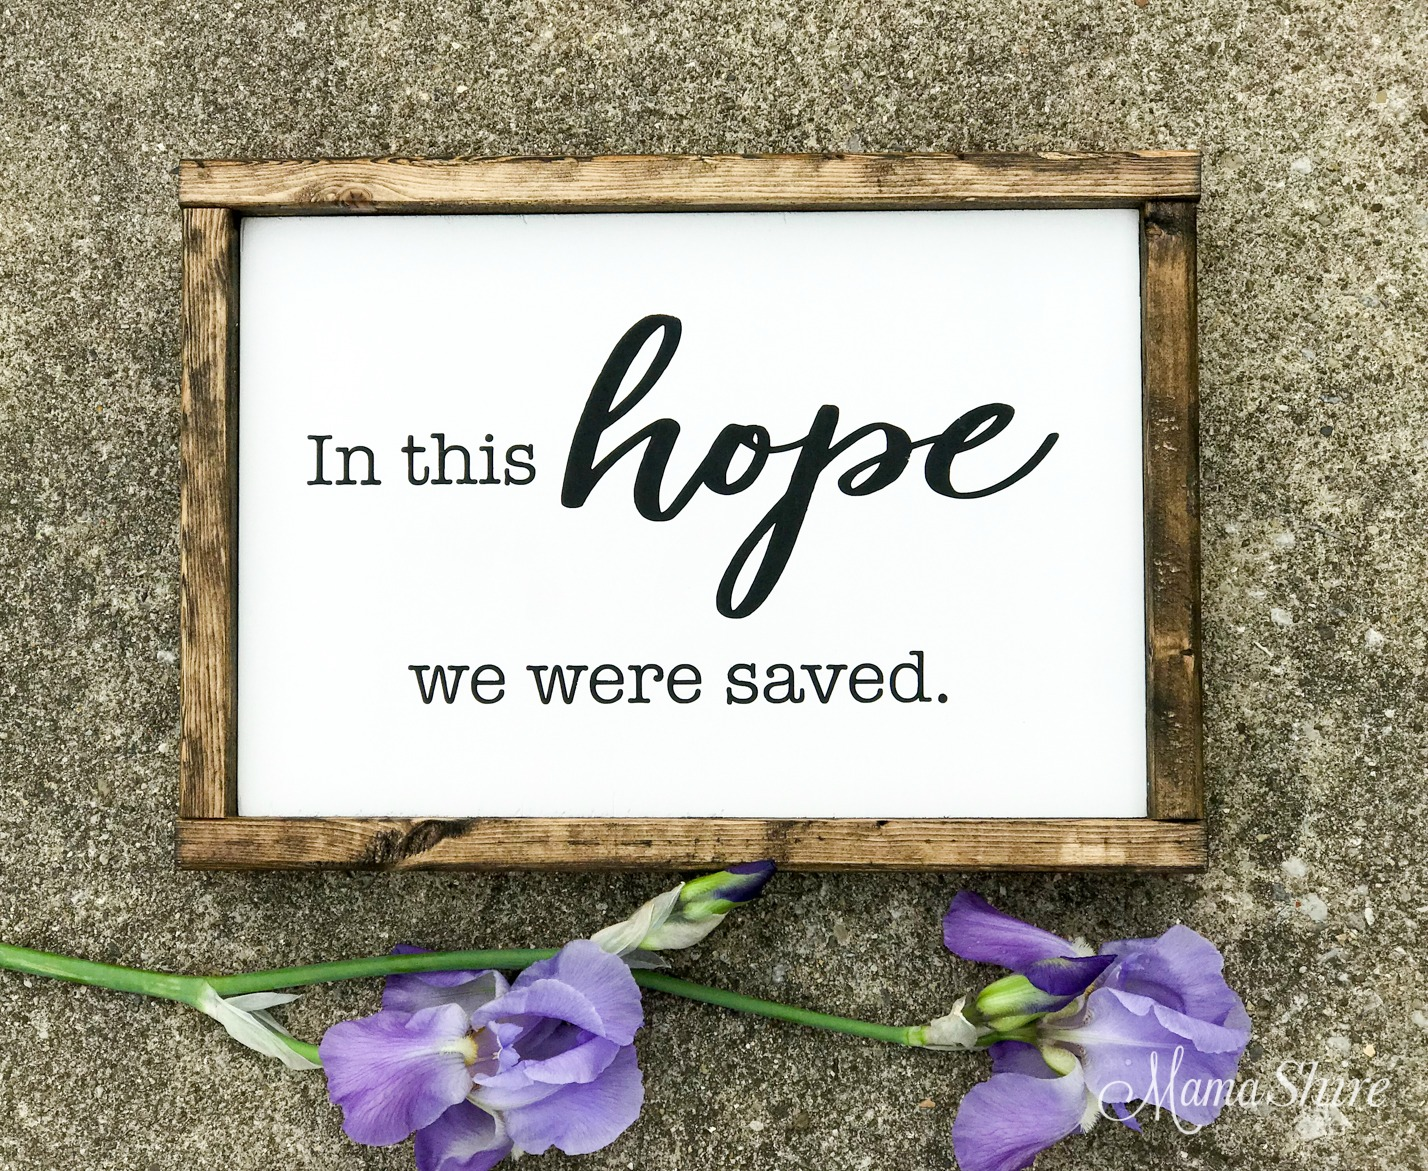 In this hope we were saved. Wood sign made with a vinyl stencil.